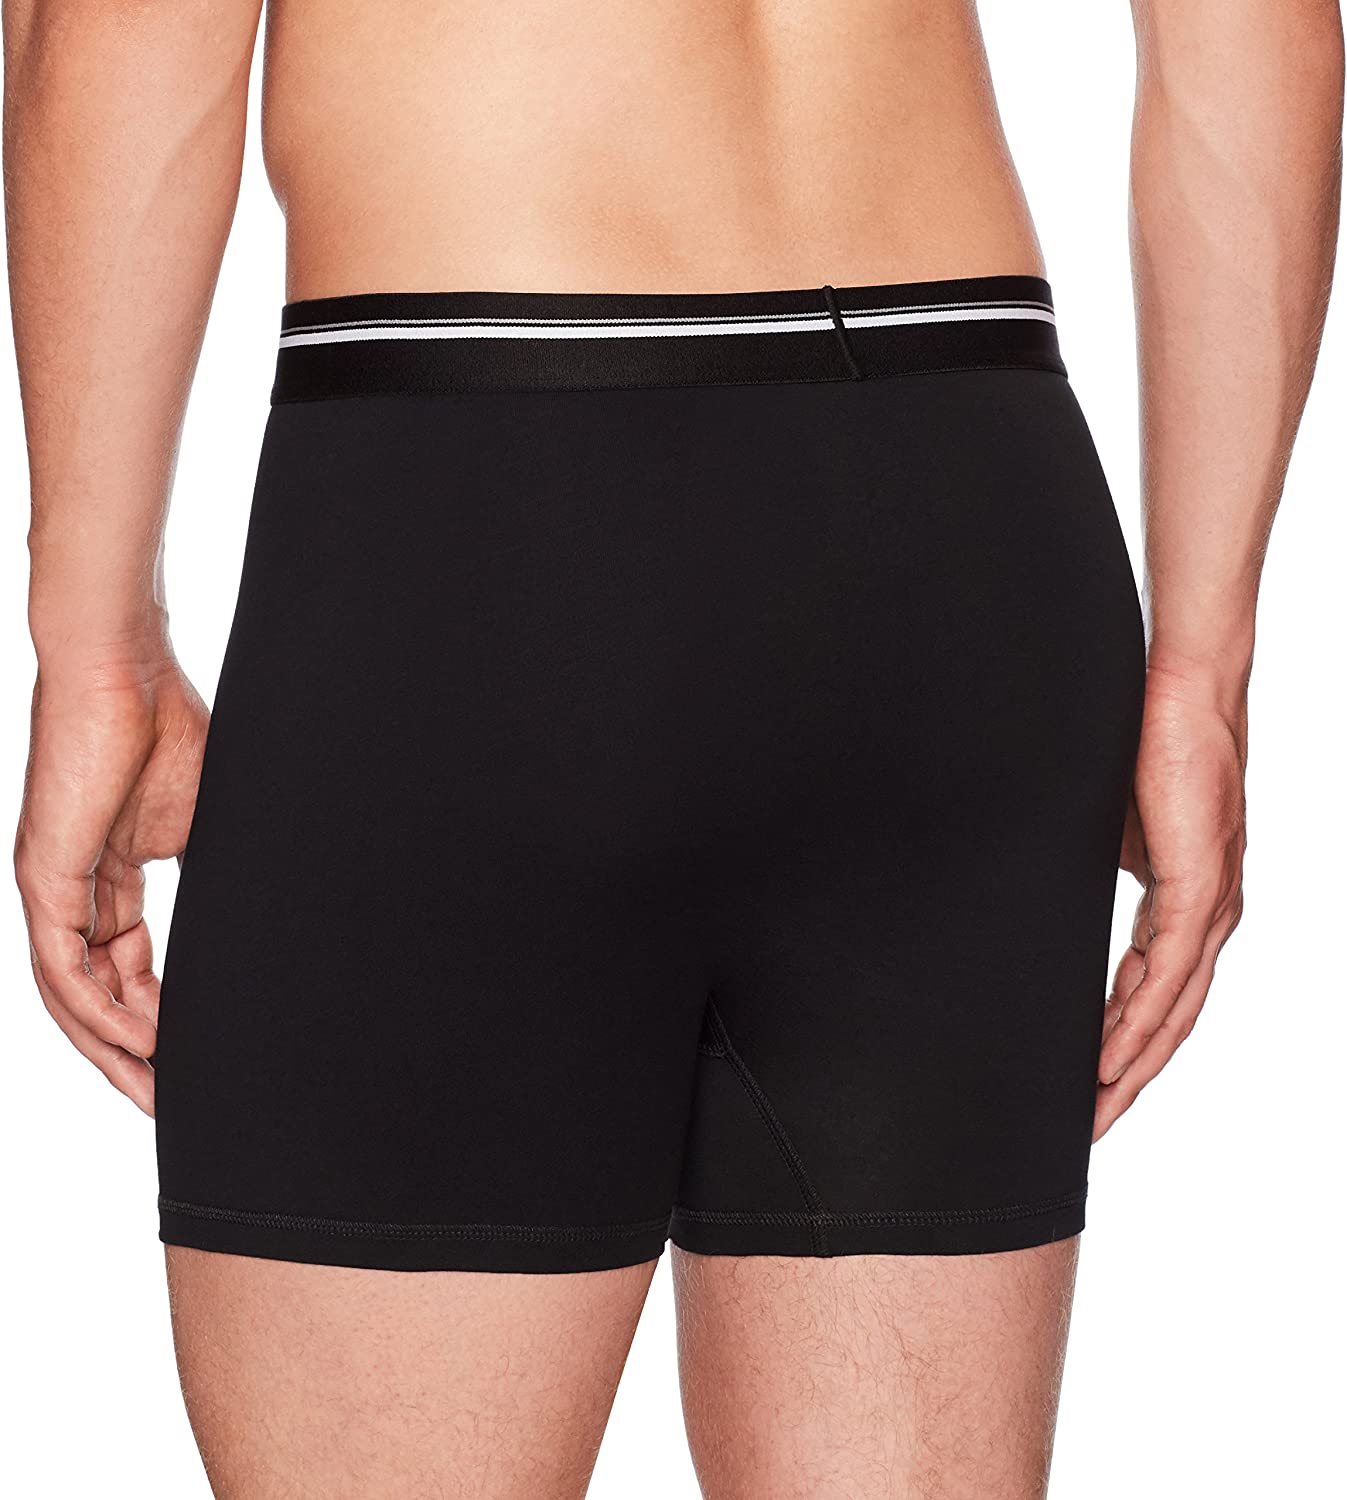 Brand - Goodthreads Men's 4-Pack Tag-Free Boxer Briefs: Clothing